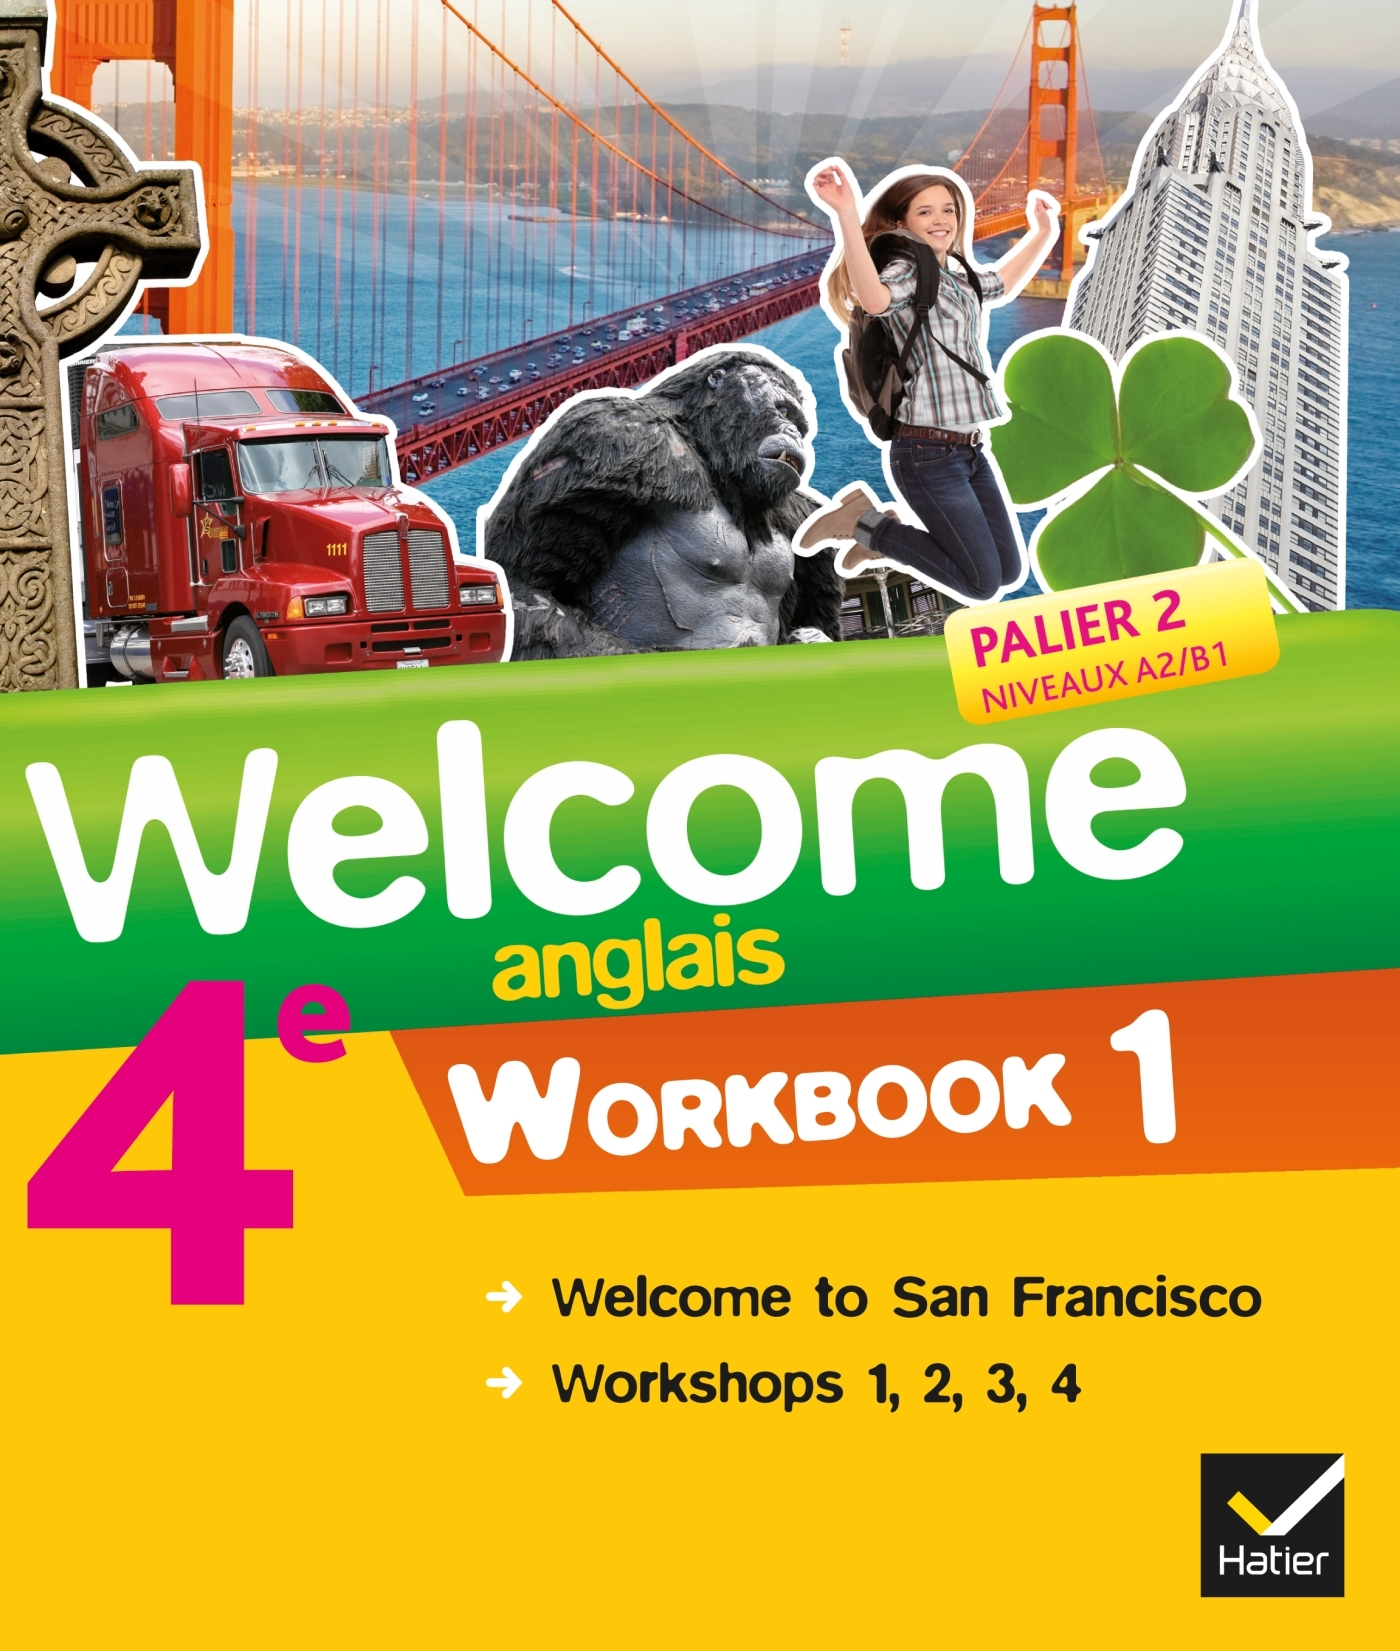 WELCOME ANGLAIS 4E ED. 2013 - WORKBOOK (2 VOLUMES) - WORKBOOK (EN 2 VOLUMES)